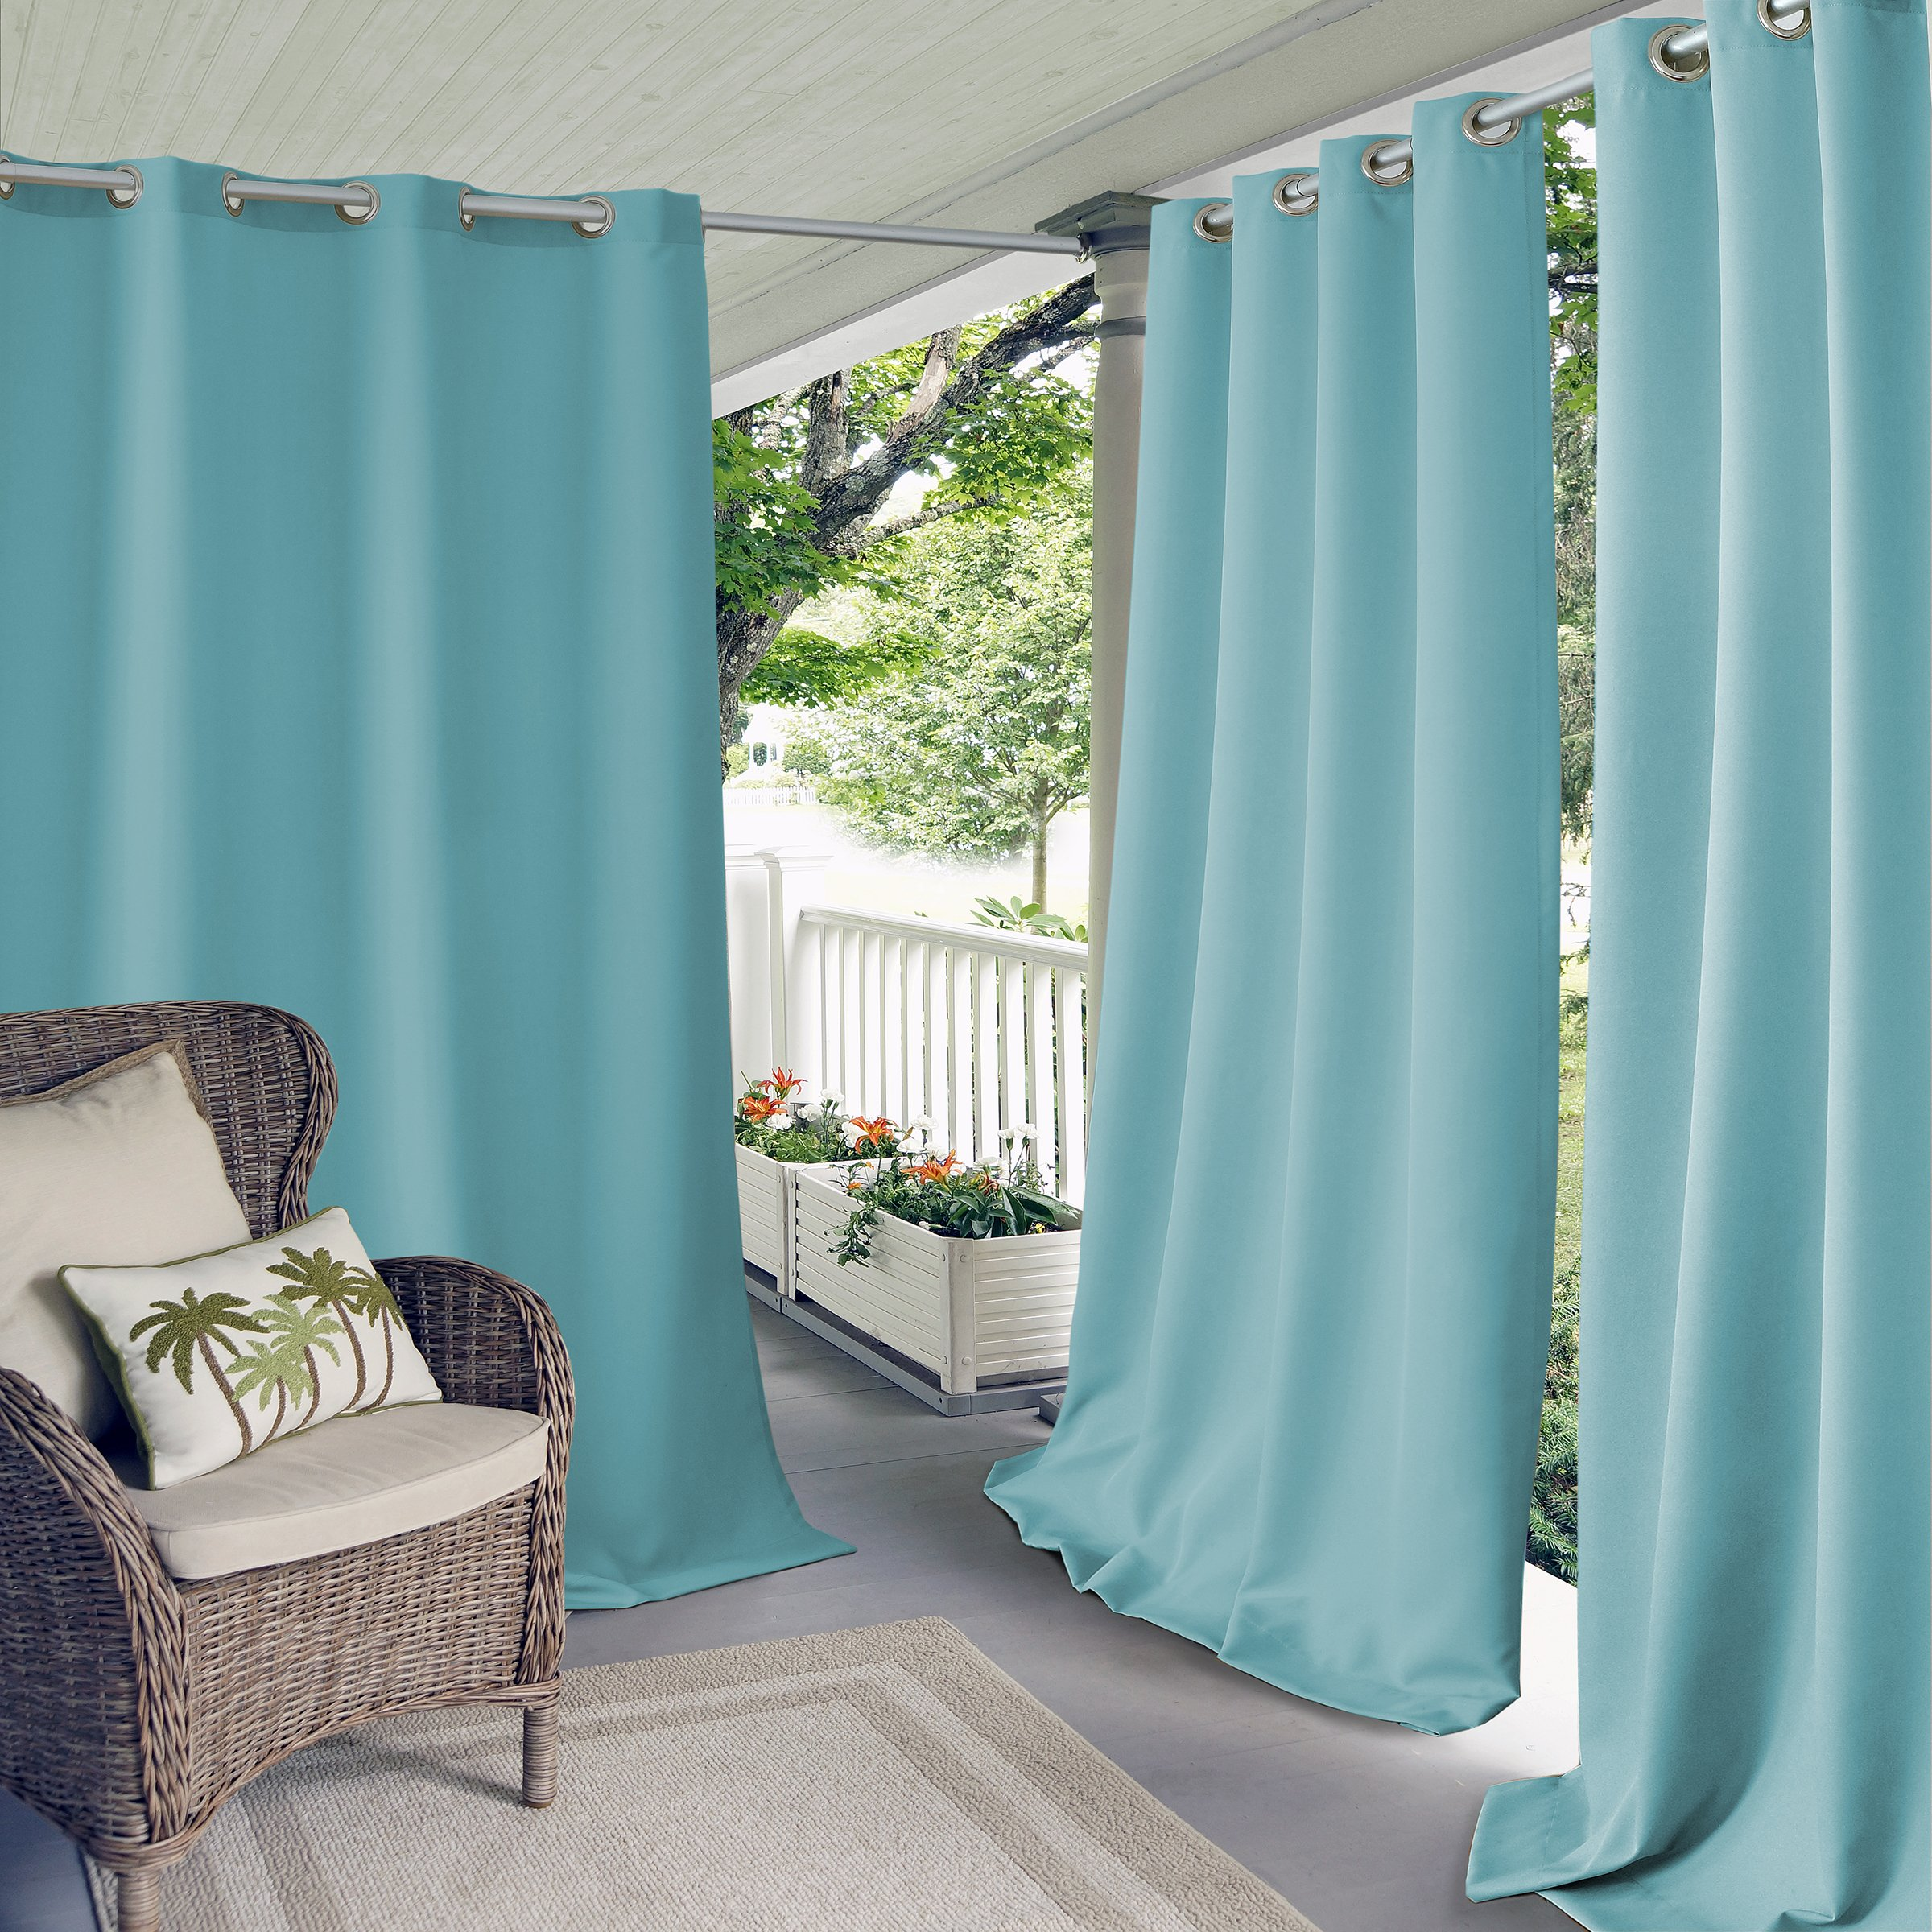 Elrene Home Fashions Connor Indoor/Outdoor Solid Grommet Panel Window Curtain 52'' x 108'' (1), Turquoise by Elrene (Image #1)